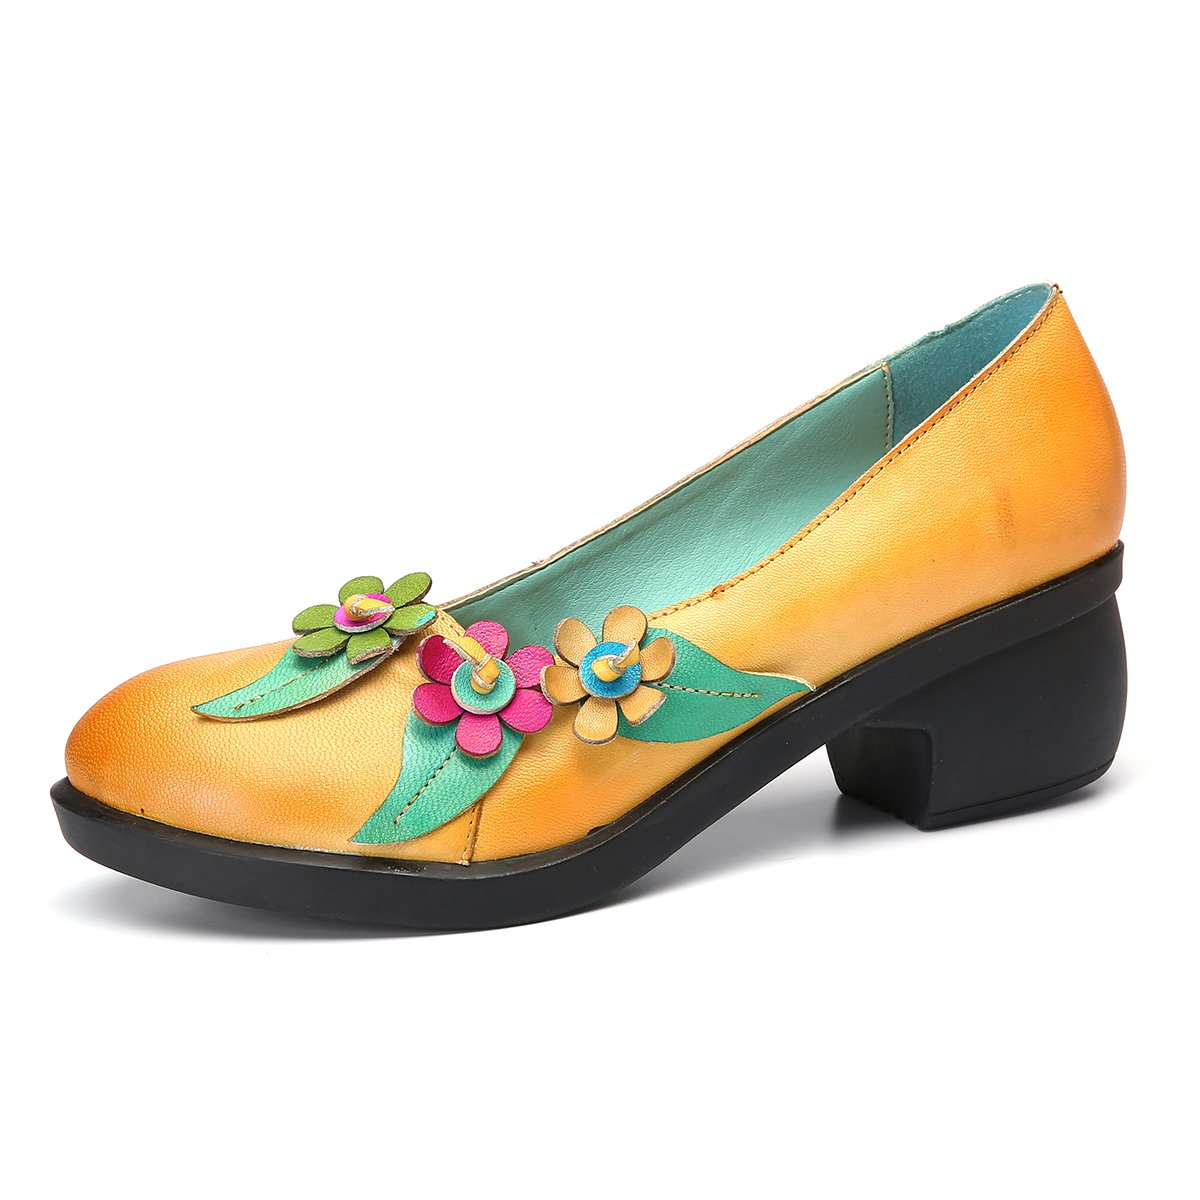 Yellow gracosy Women Pump shoes, Leather Heel shoes Round Toe Mid Heel shoes Outdoor Walking Casual Dress shoes